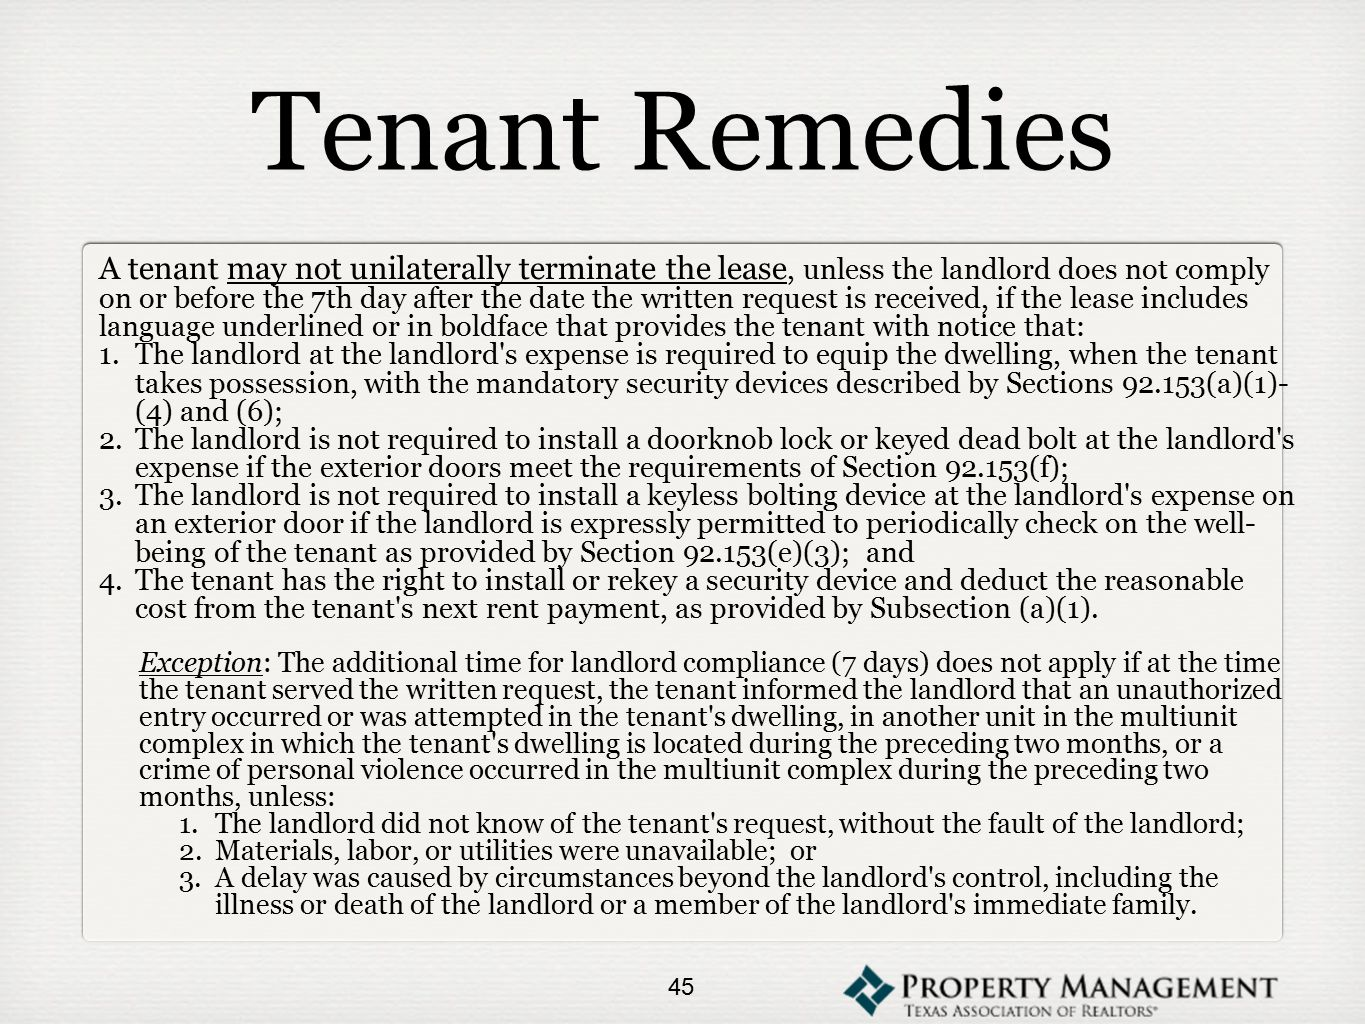 Tenant Remedies A tenant may not unilaterally terminate the lease, unless the landlord does not comply on or before the 7th day after the date the written request is received, if the lease includes language underlined or in boldface that provides the tenant with notice that: 1.The landlord at the landlord s expense is required to equip the dwelling, when the tenant takes possession, with the mandatory security devices described by Sections 92.153(a)(1)- (4) and (6); 2.The landlord is not required to install a doorknob lock or keyed dead bolt at the landlord s expense if the exterior doors meet the requirements of Section 92.153(f); 3.The landlord is not required to install a keyless bolting device at the landlord s expense on an exterior door if the landlord is expressly permitted to periodically check on the well- being of the tenant as provided by Section 92.153(e)(3); and 4.The tenant has the right to install or rekey a security device and deduct the reasonable cost from the tenant s next rent payment, as provided by Subsection (a)(1).